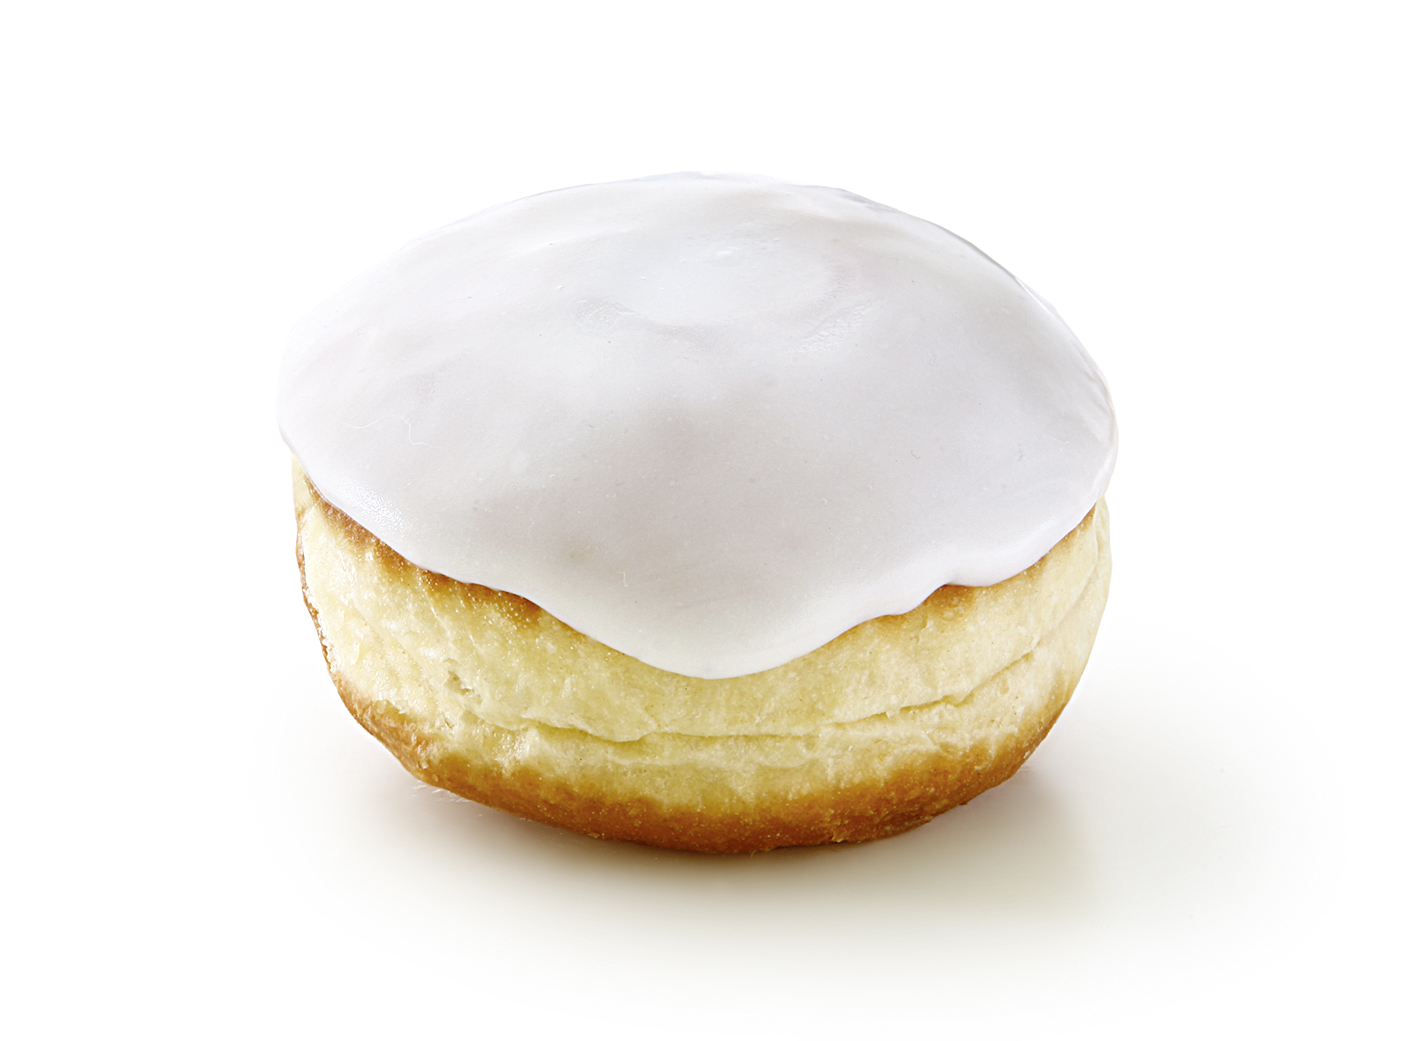 Jelly Doughnut, Multifruit with Fondant - Pastry coated with fudge in big size/ thaw only/ diameter: 8.5 cm